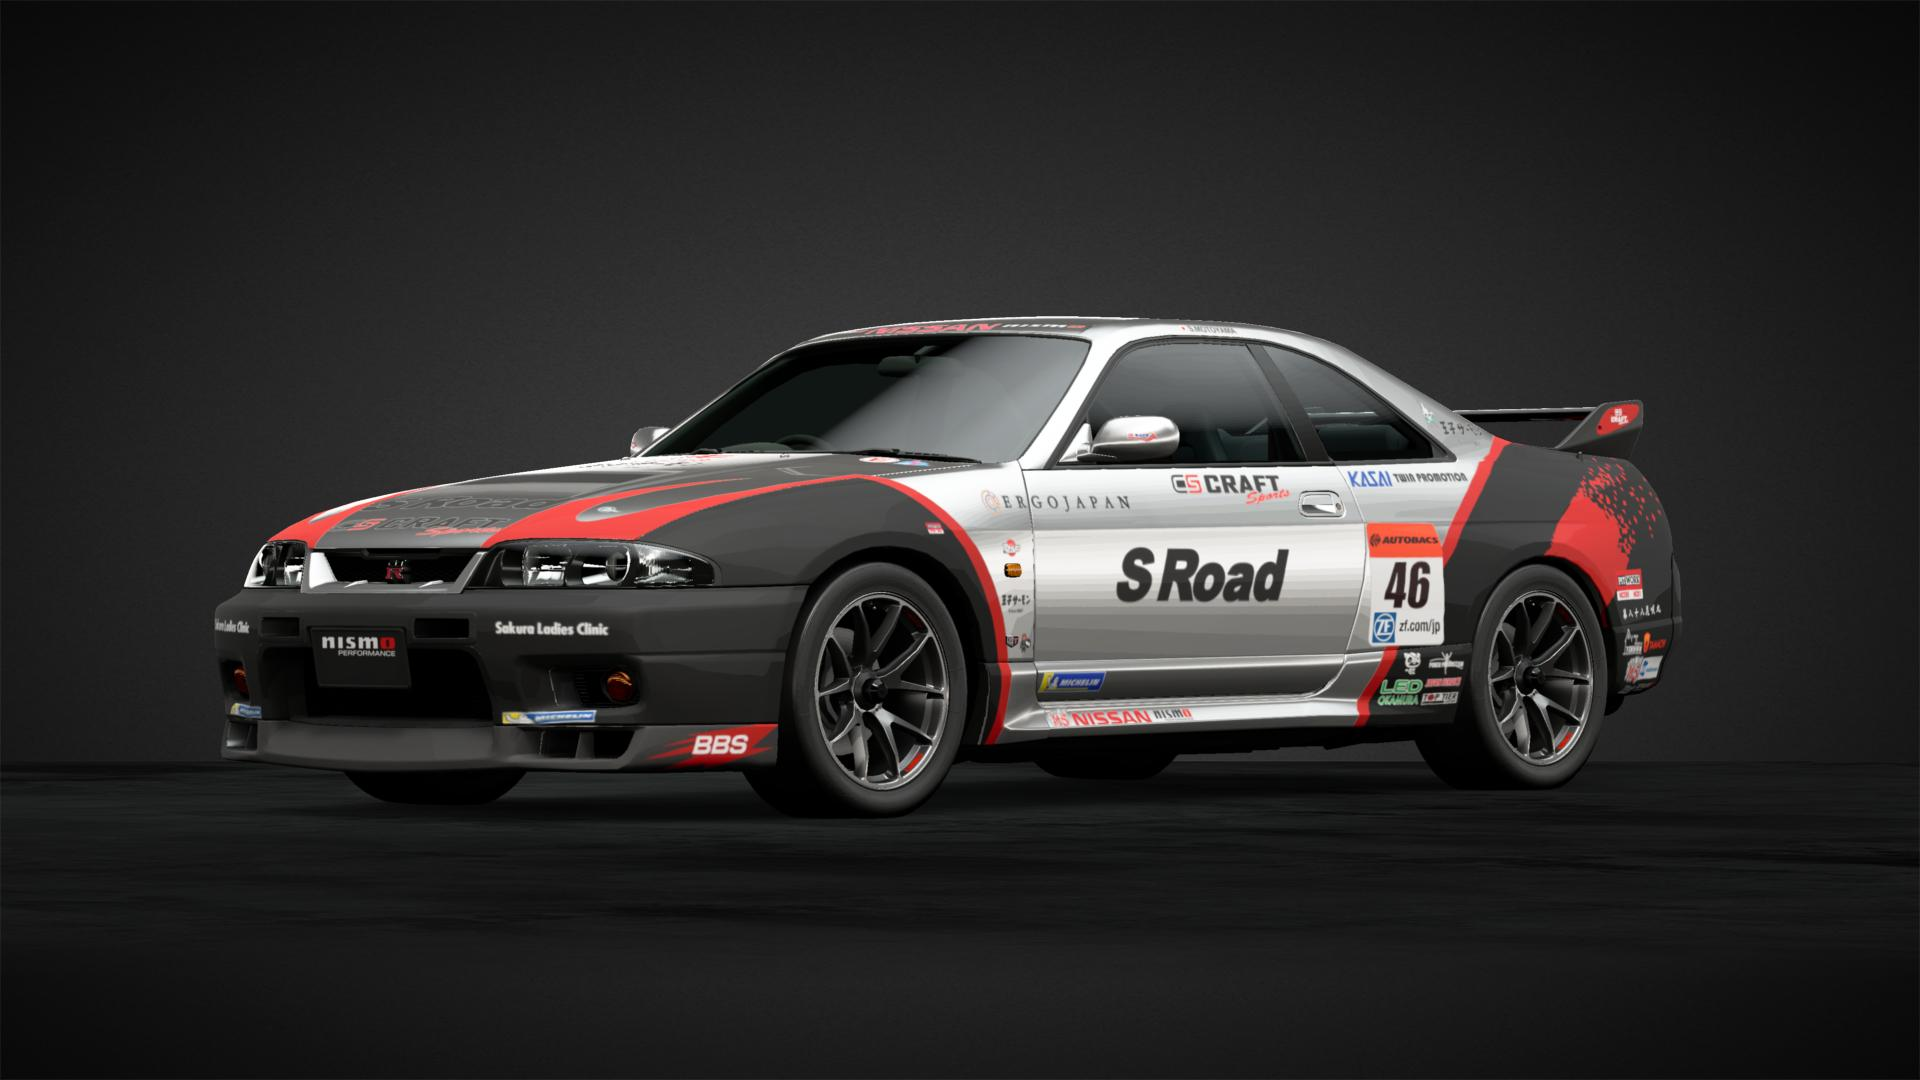 R33 Gtr S Road Edition Car Livery By Kya Xaser Community Gran Turismo Sport